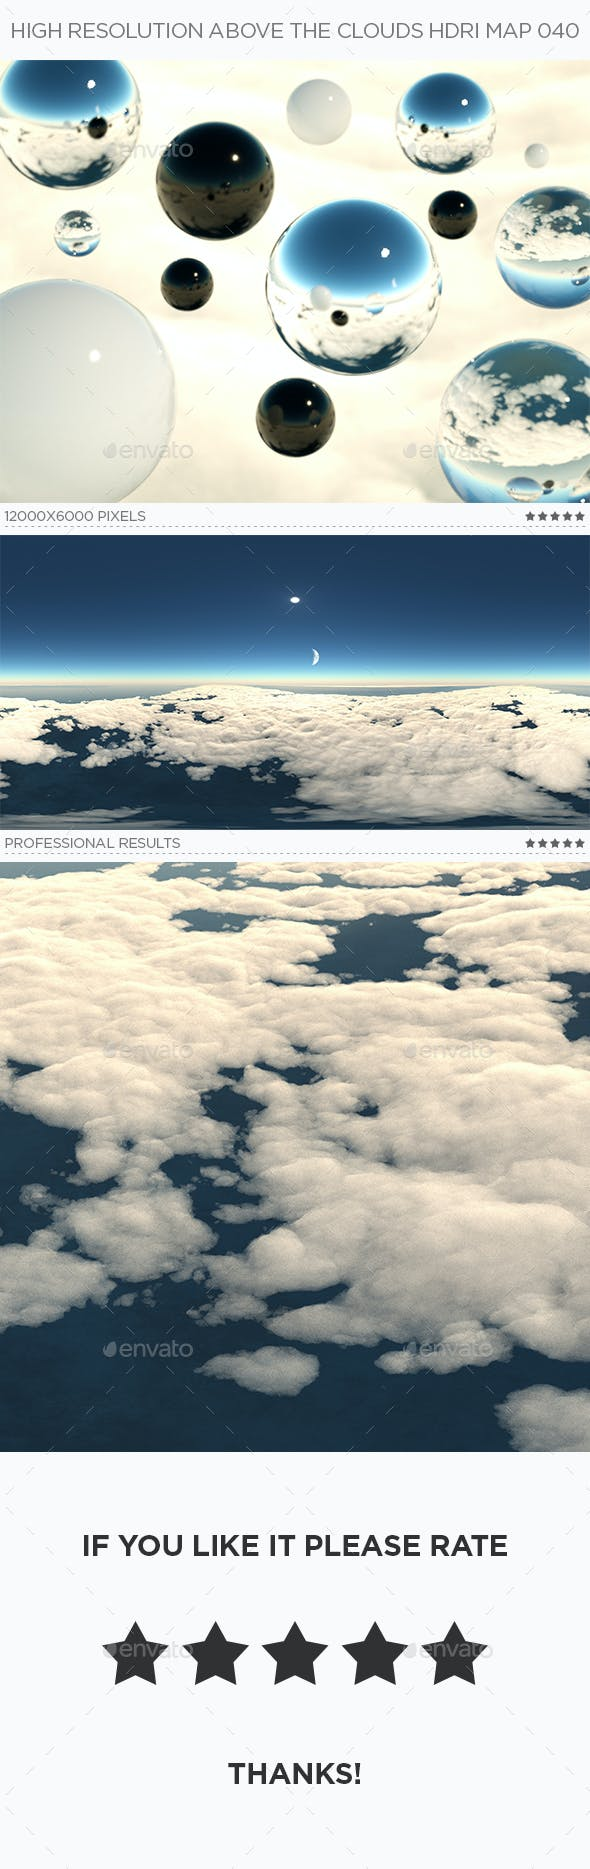 High Resolution Above The Clouds HDRi Map 040 - 3DOcean Item for Sale